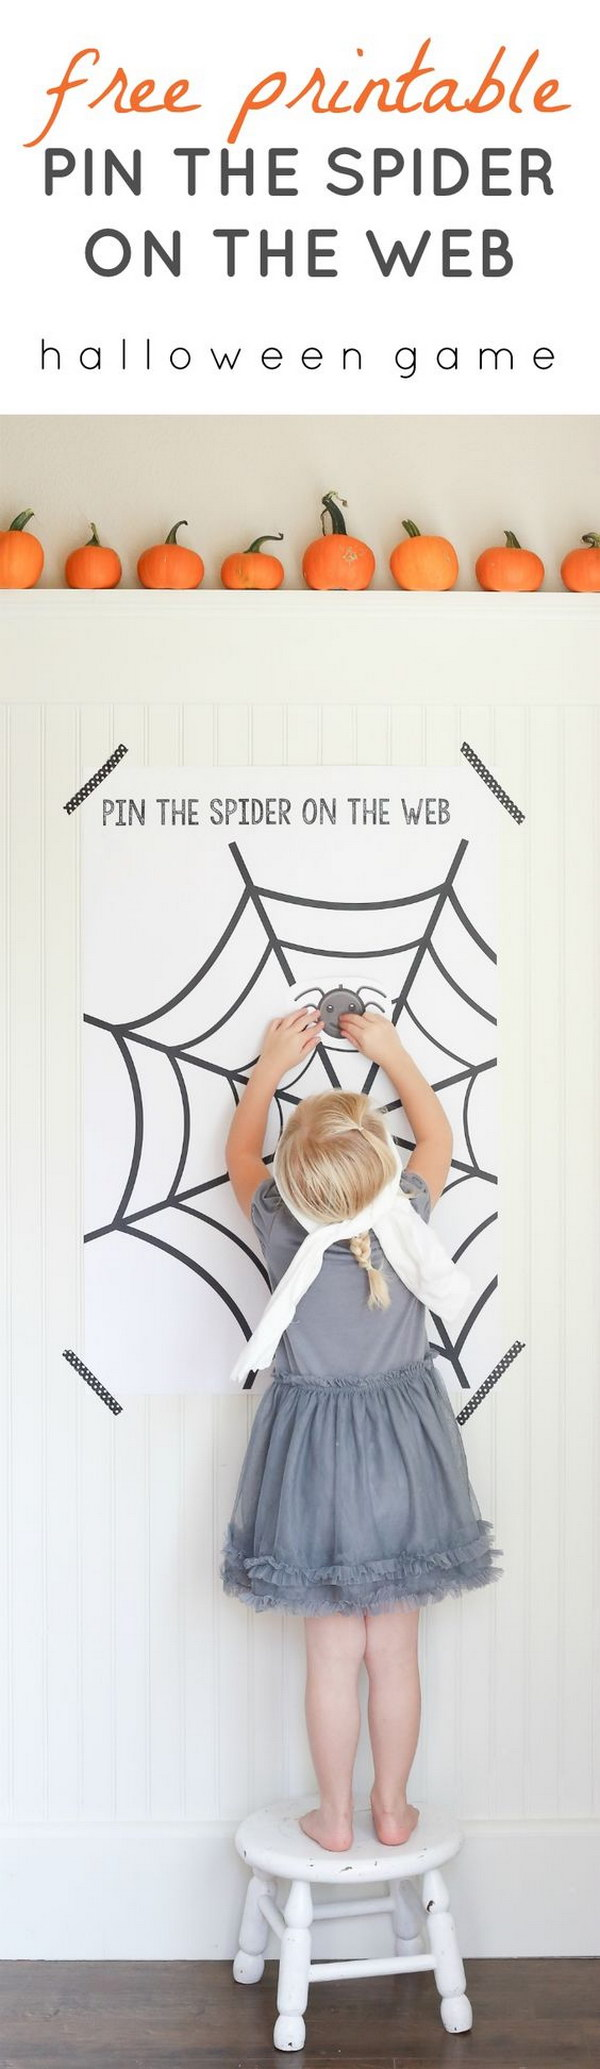 Halloween Pin the Spider on the Web Game.